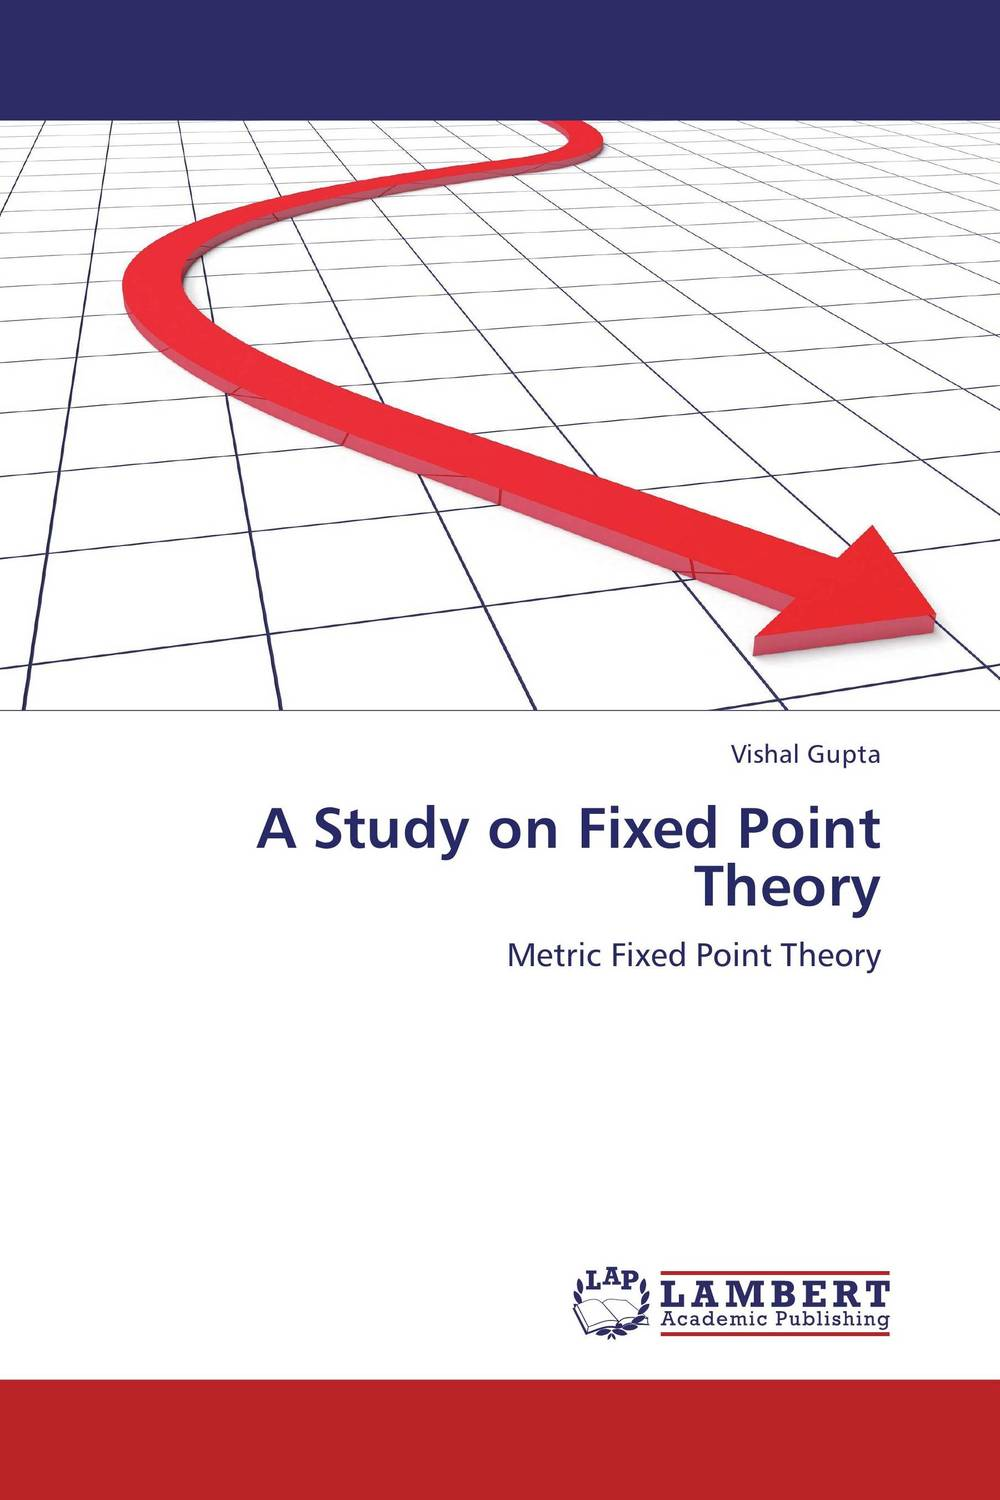 A Study on Fixed Point Theory nirmal kumar singh and ravi prakash dubey fixed point theorems in topological spaces with application to fratal